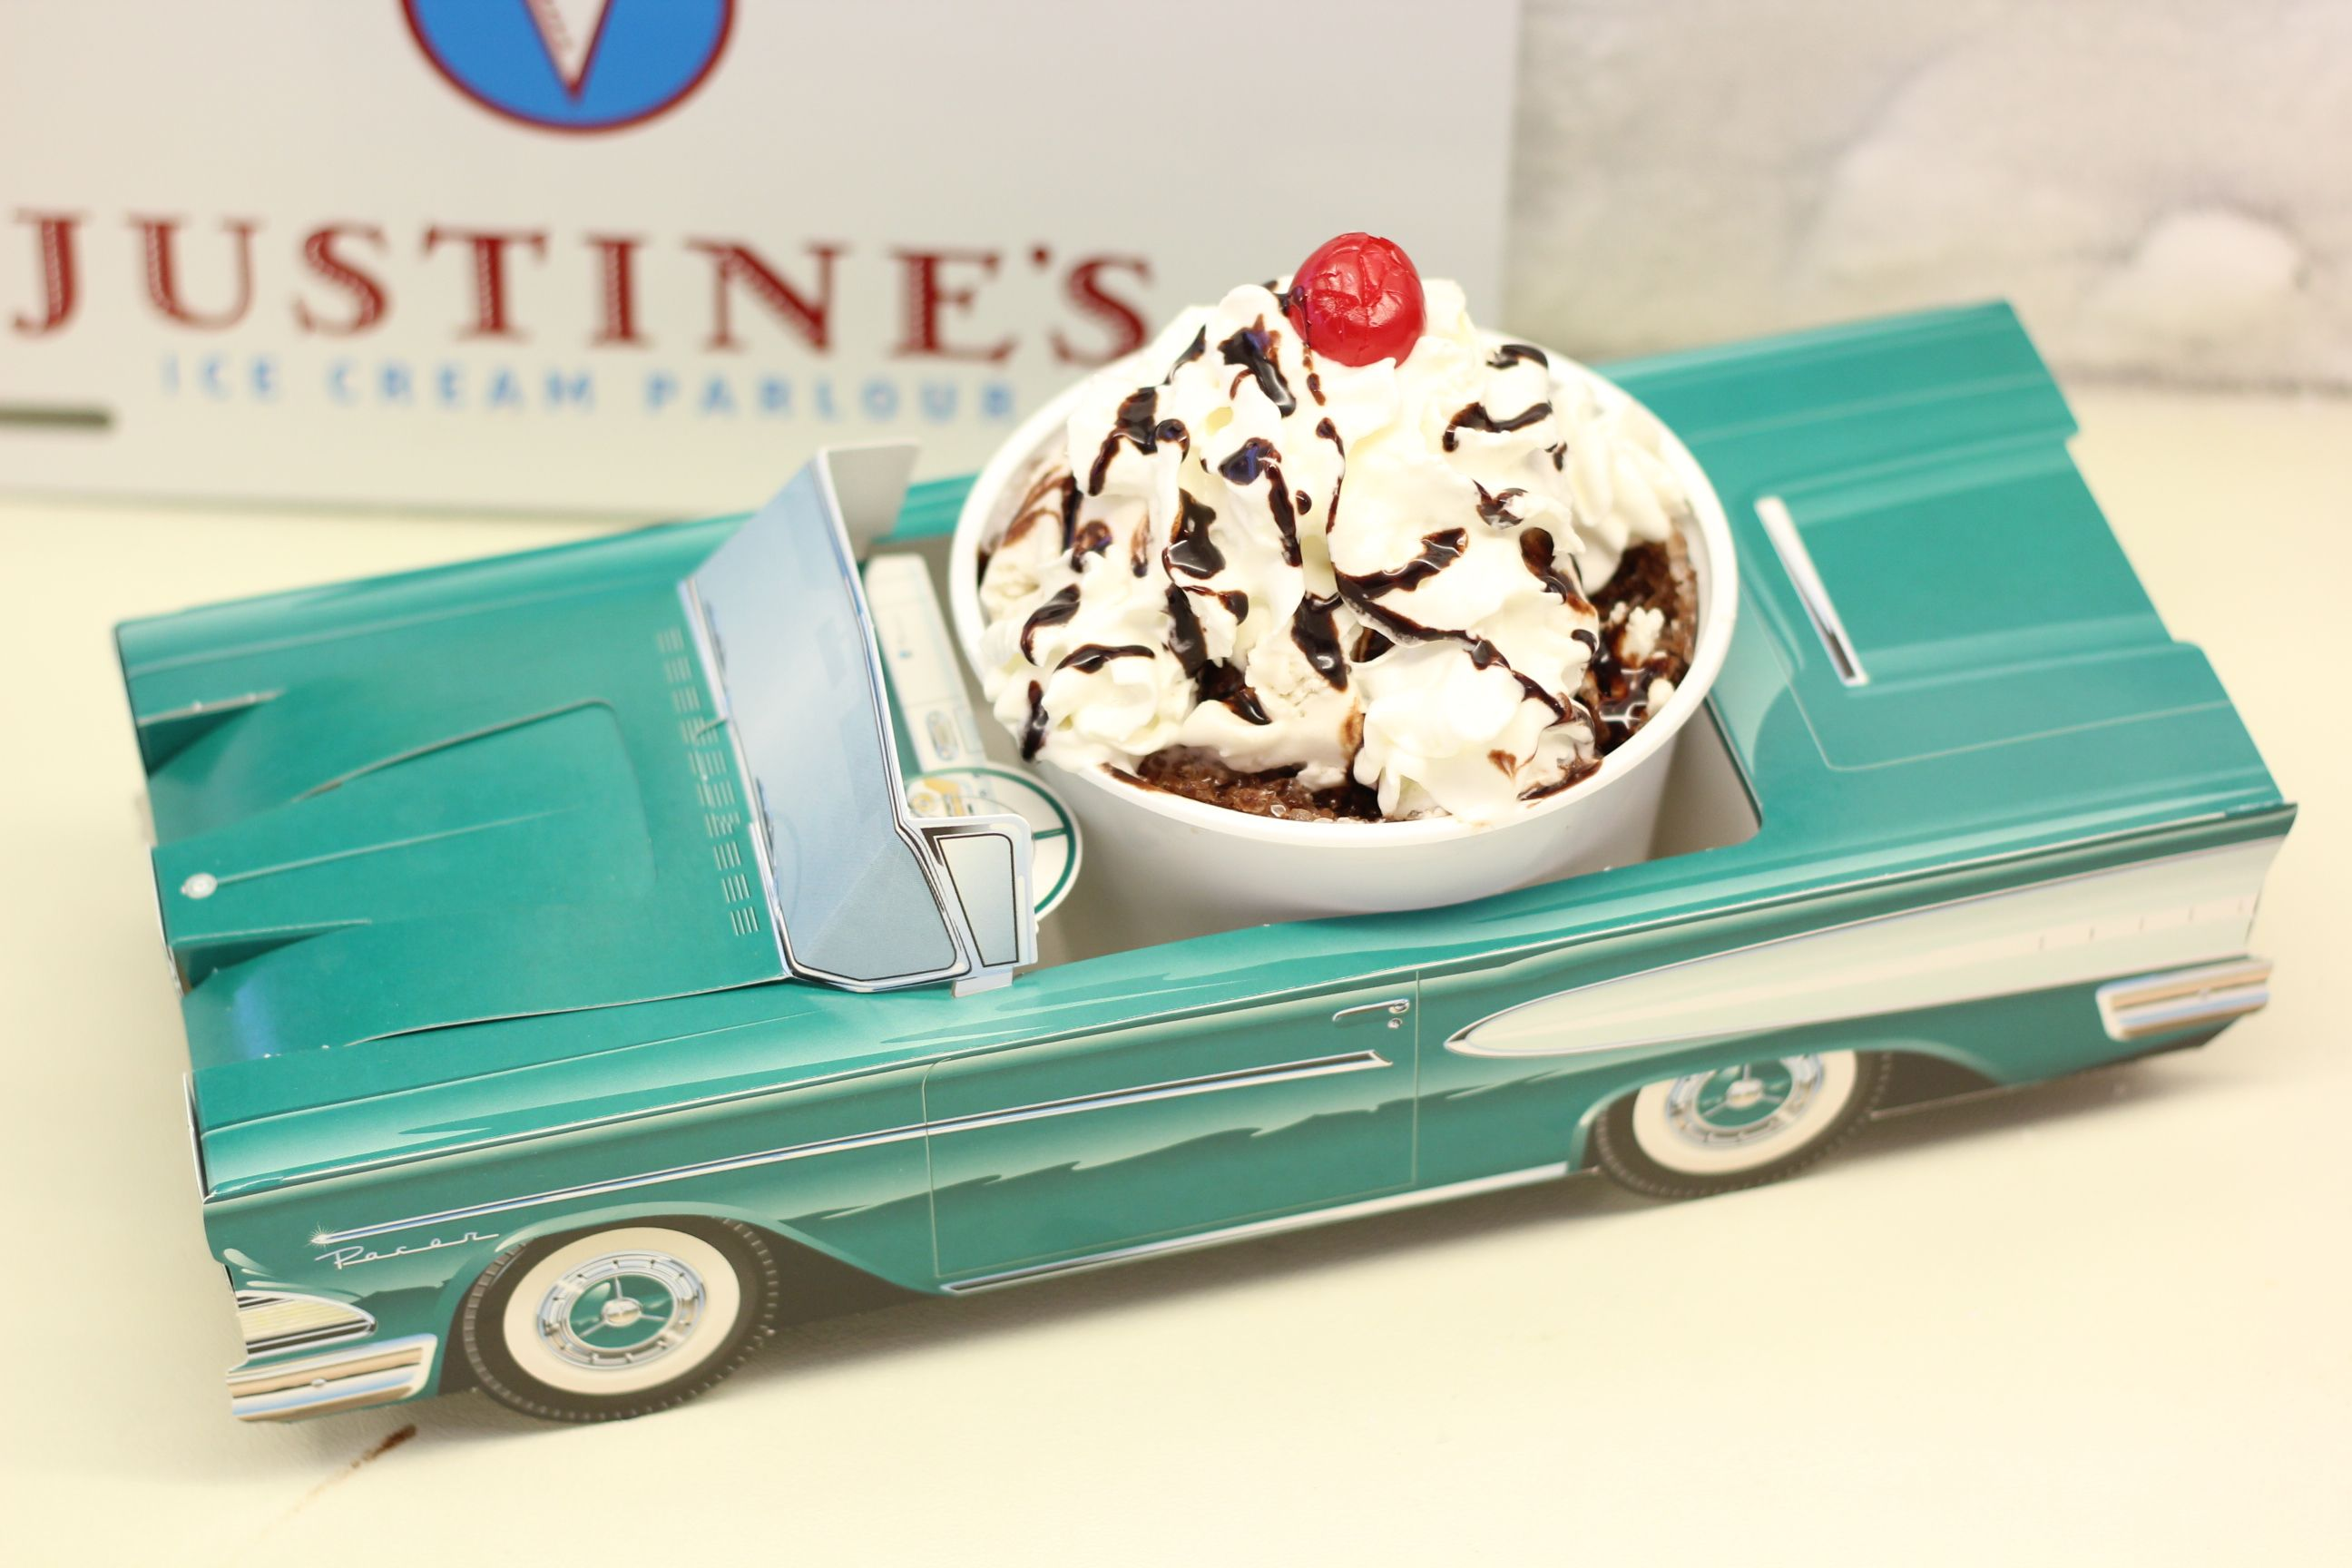 Is this not the cutest sundae?  Get the StreetRod at Justine's in Ocean City! #ocmd